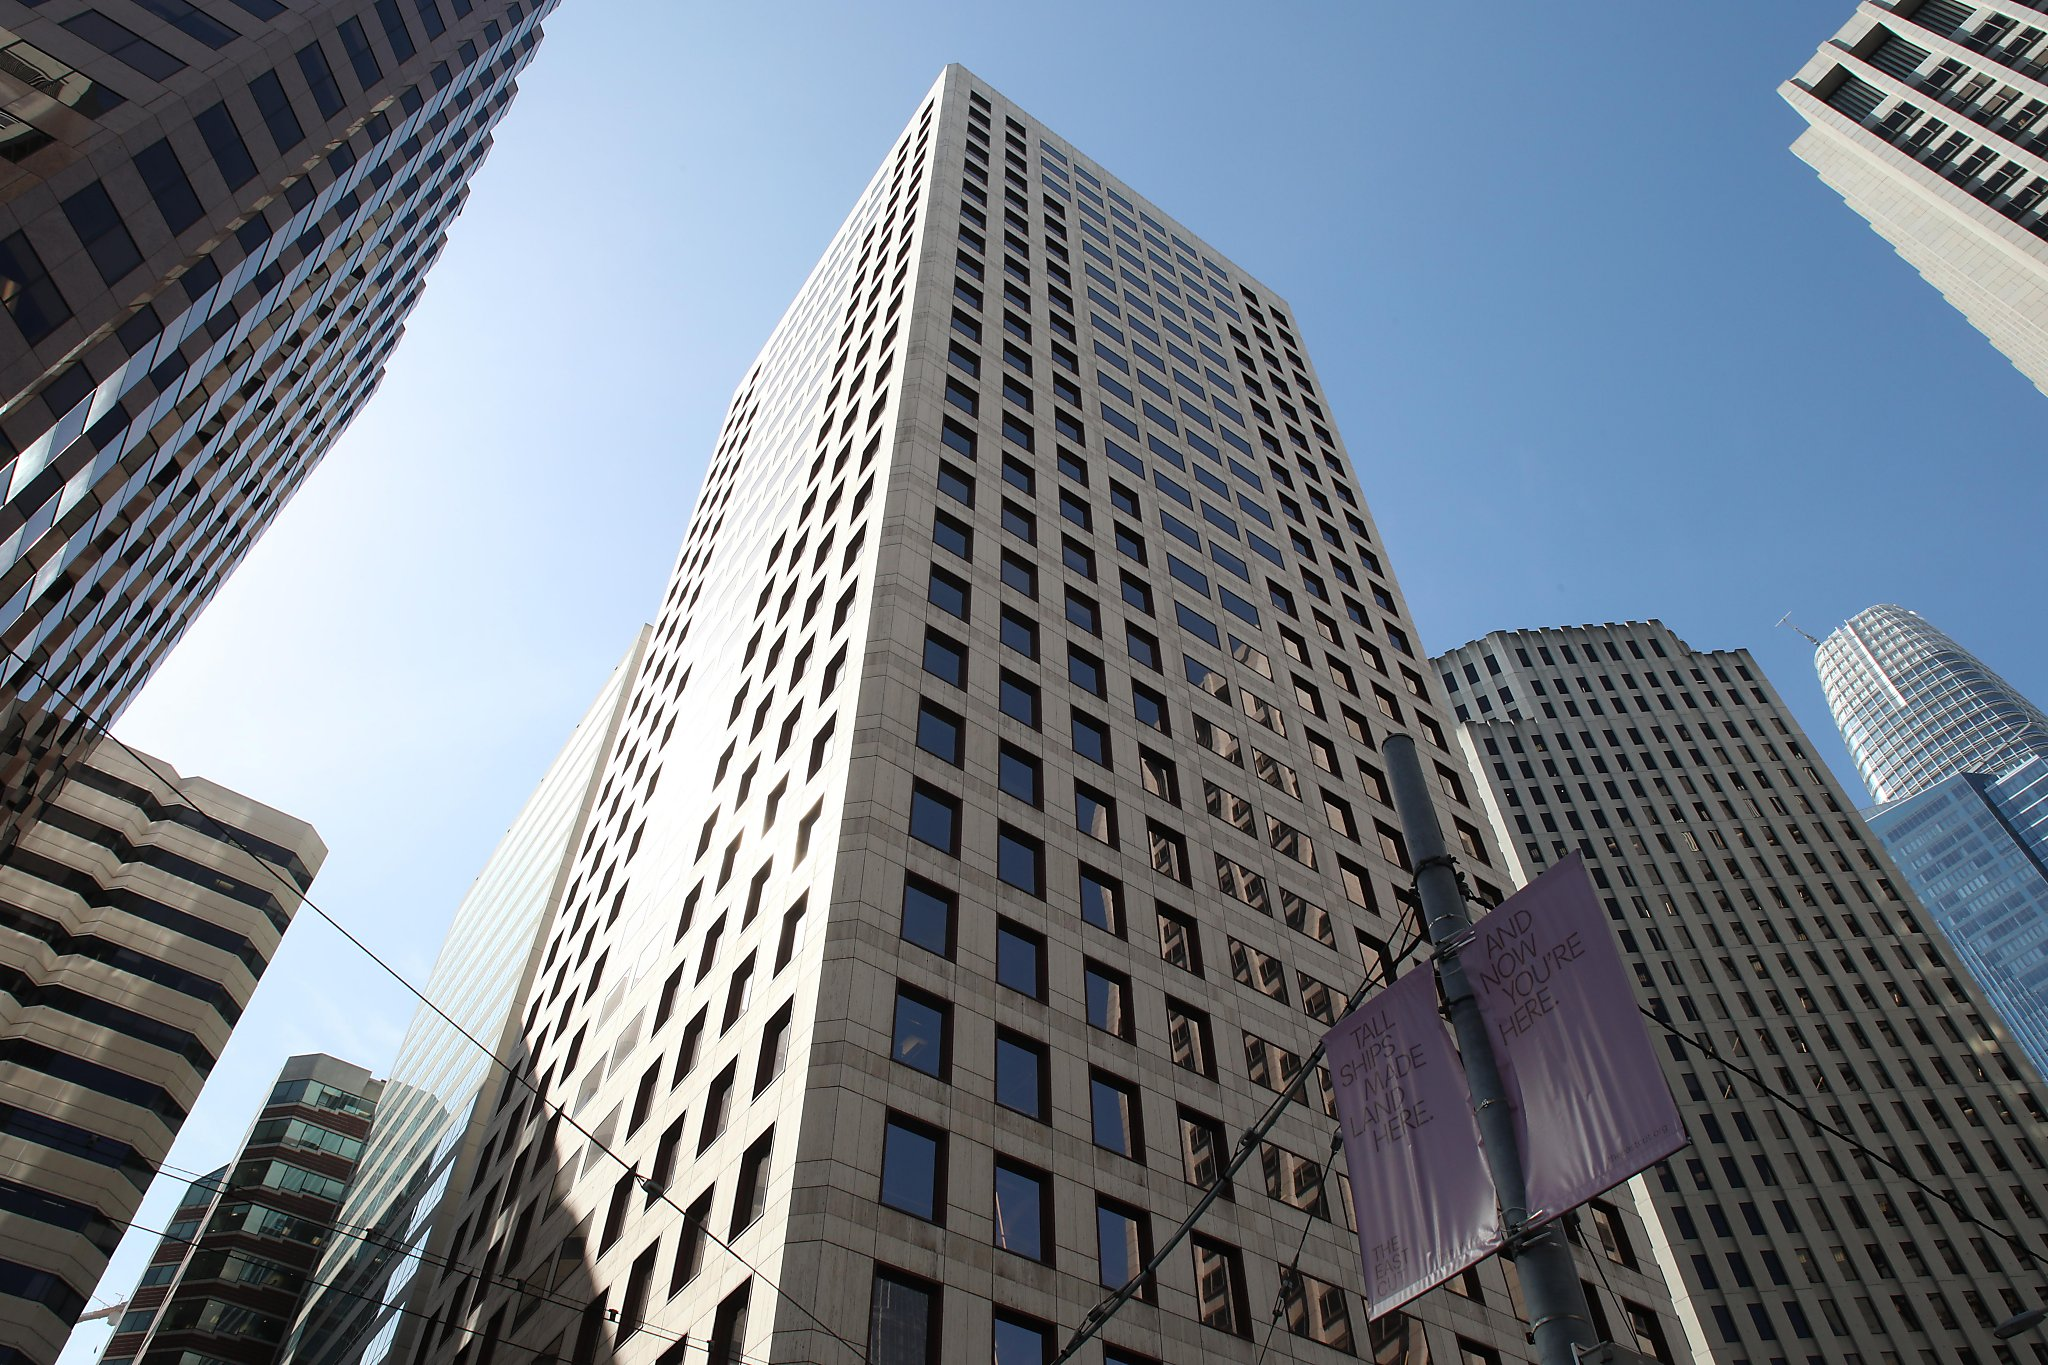 Fast-growing Juul buys San Francisco office tower – Business